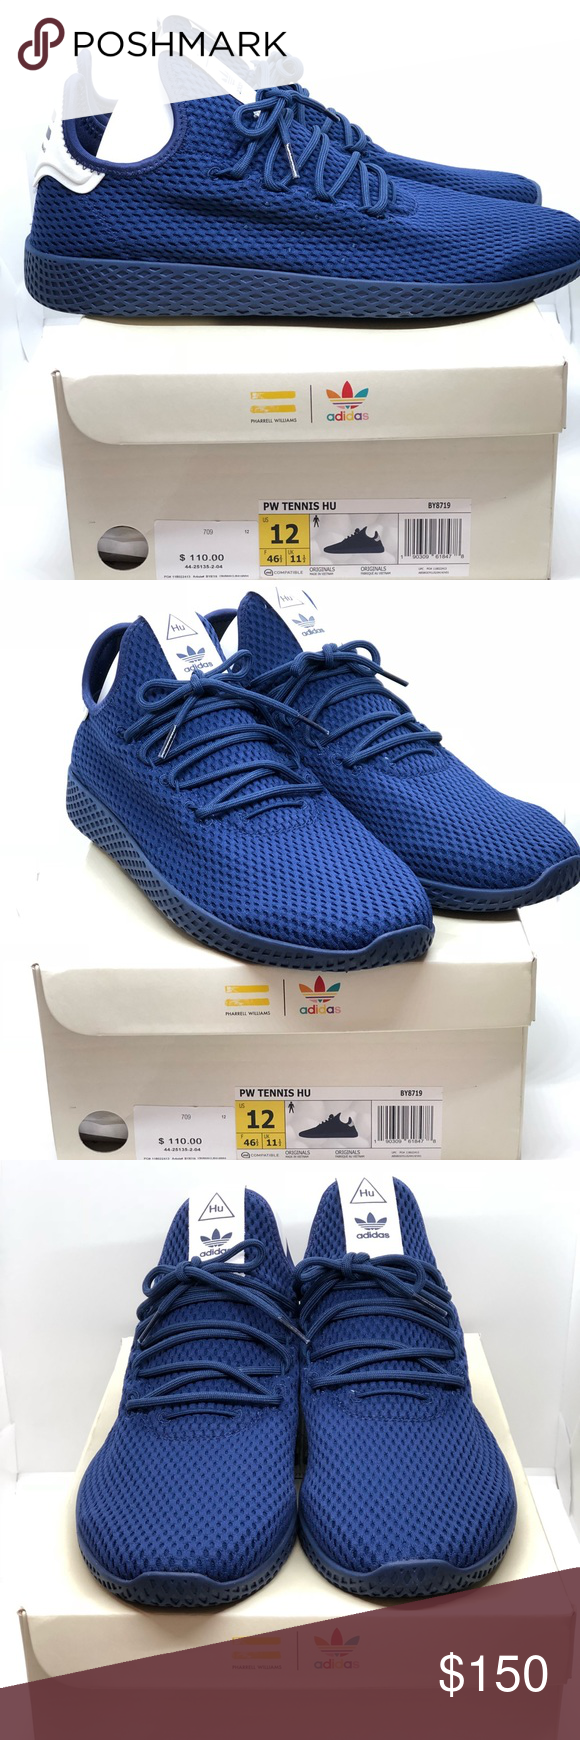 d4cbeec78 Adidas Pharrell Williams PW Tennis Hu BY8719 Adidas Pharrell Williams PW  Tennis Hu Dark Blue BY8719 Size 12. Original box included. 100% Authentic.